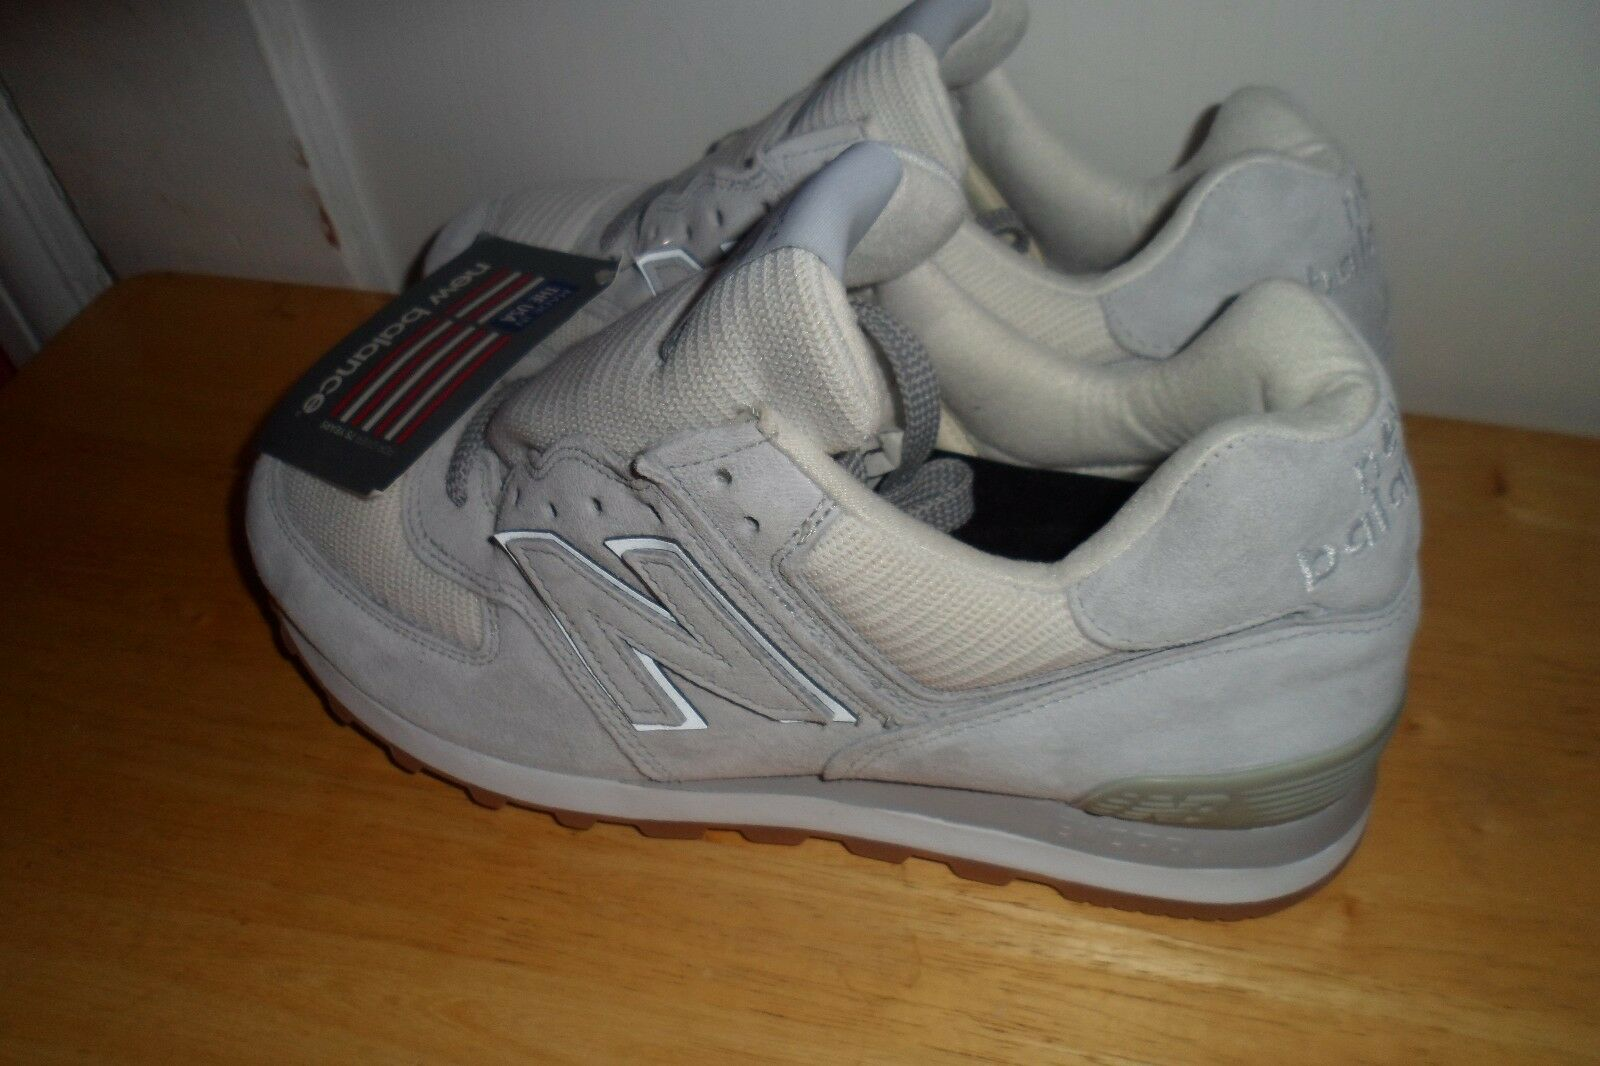 MUST SEE AWESOME NWT New New New Balance Custom 574 US574W1 Schuhe Damenschuhe 8.5 B 4e7a96